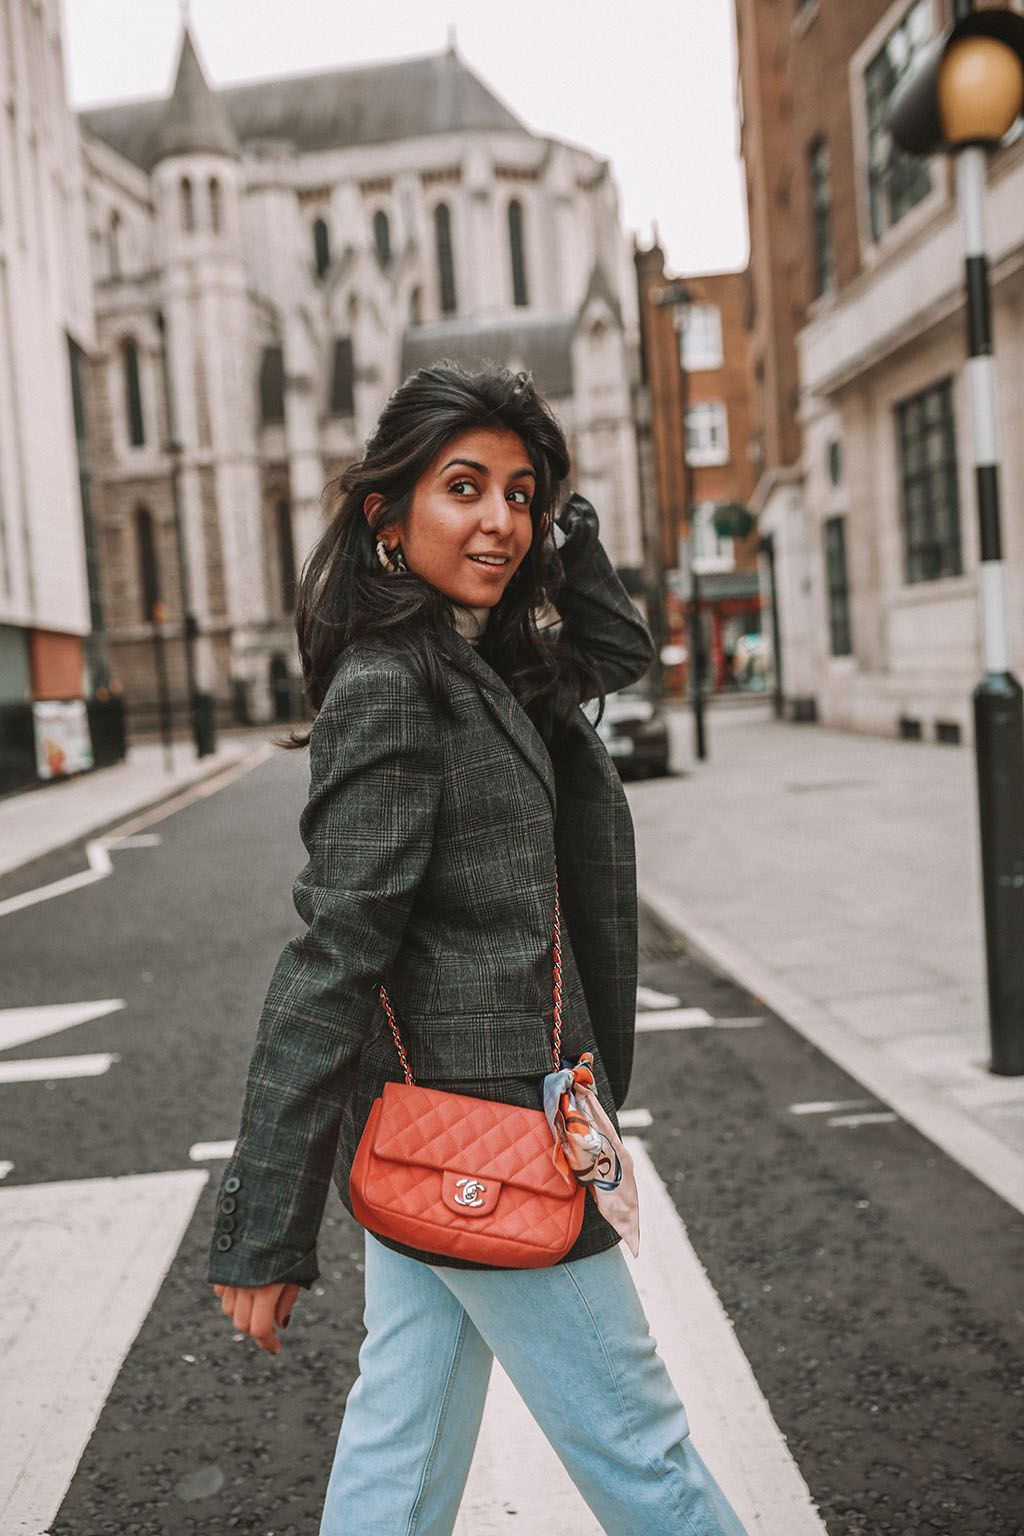 6d85f6c996ef36 Luxury fashion blogger Shloka Narang of The Silk Sneaker shares three tips  to elevate a simple winter outfit to make it more stylish featuring Chanel,  ...